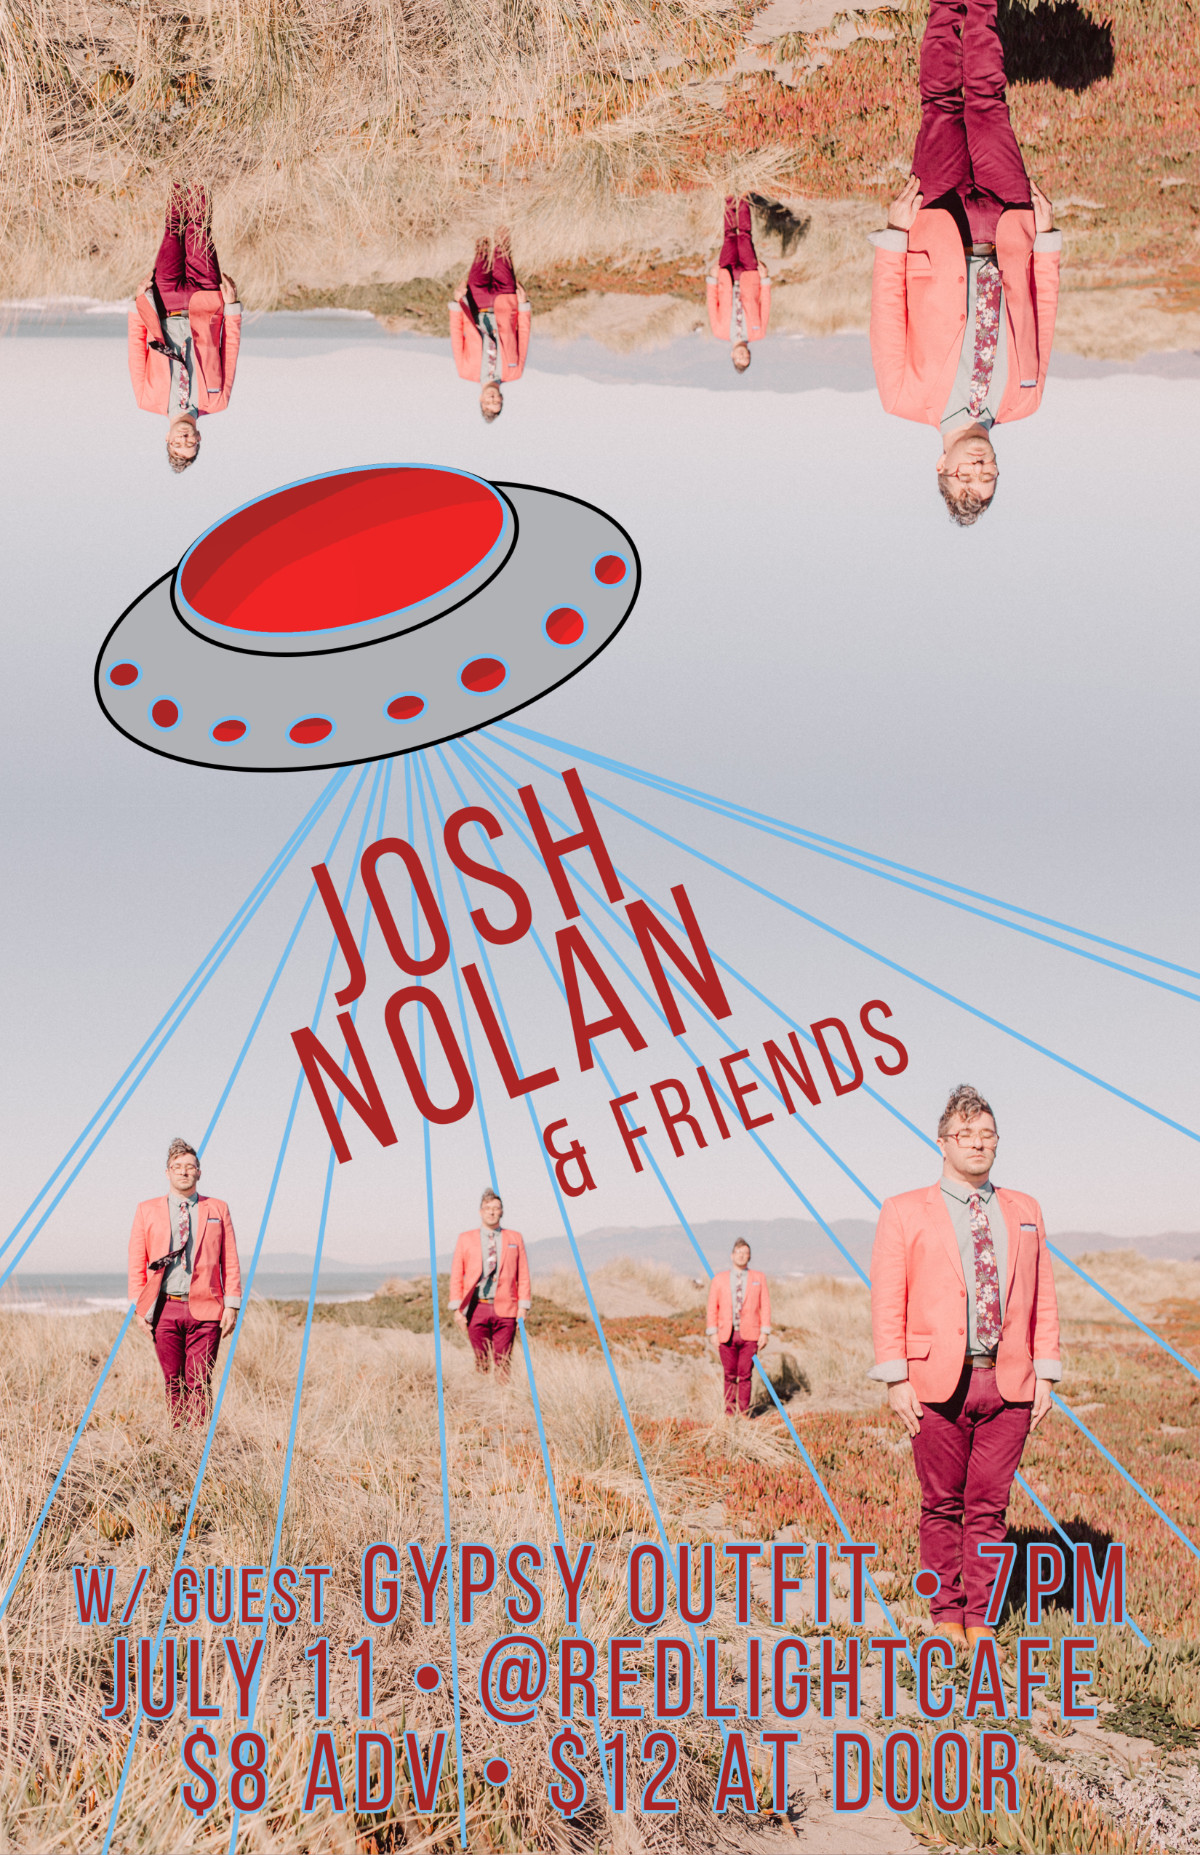 Josh Nolan (Band) w/ Gypsy Outfit — July 11, 2019 — Red Light Café, Atlanta, GA